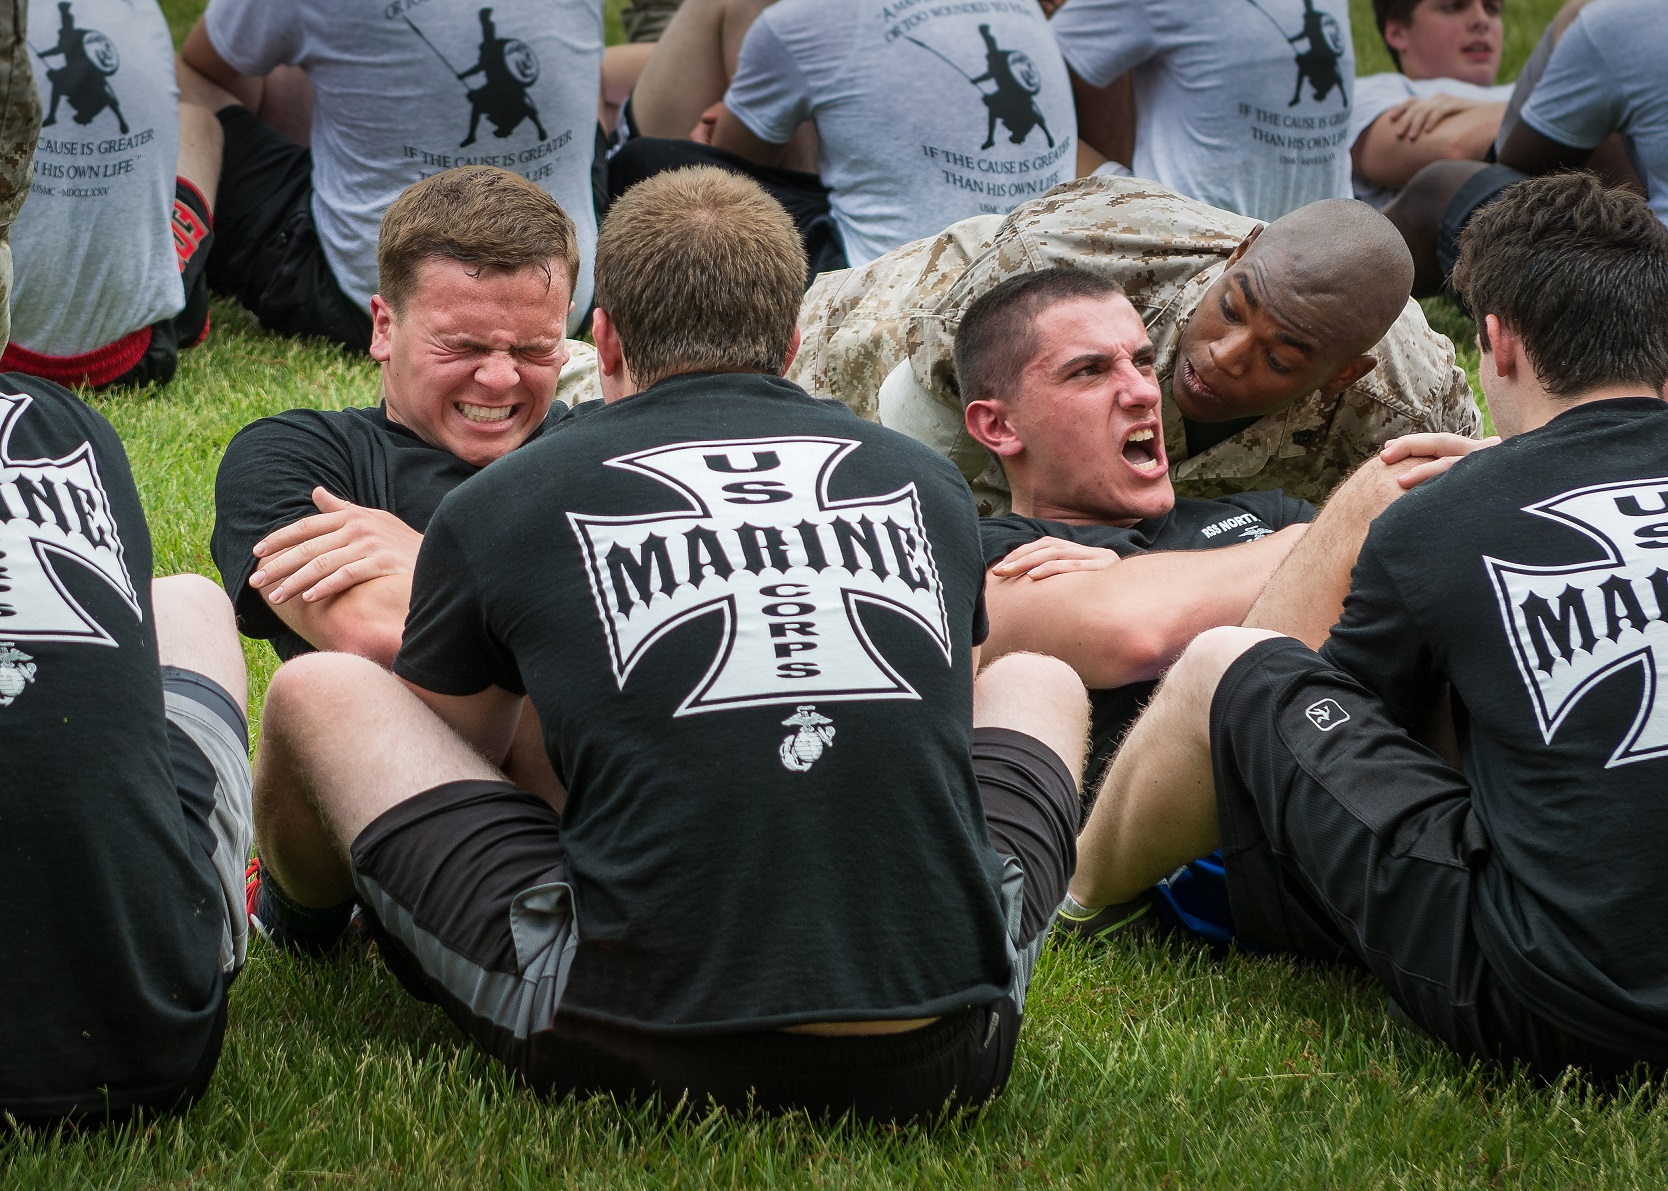 marines performing exercises in a group